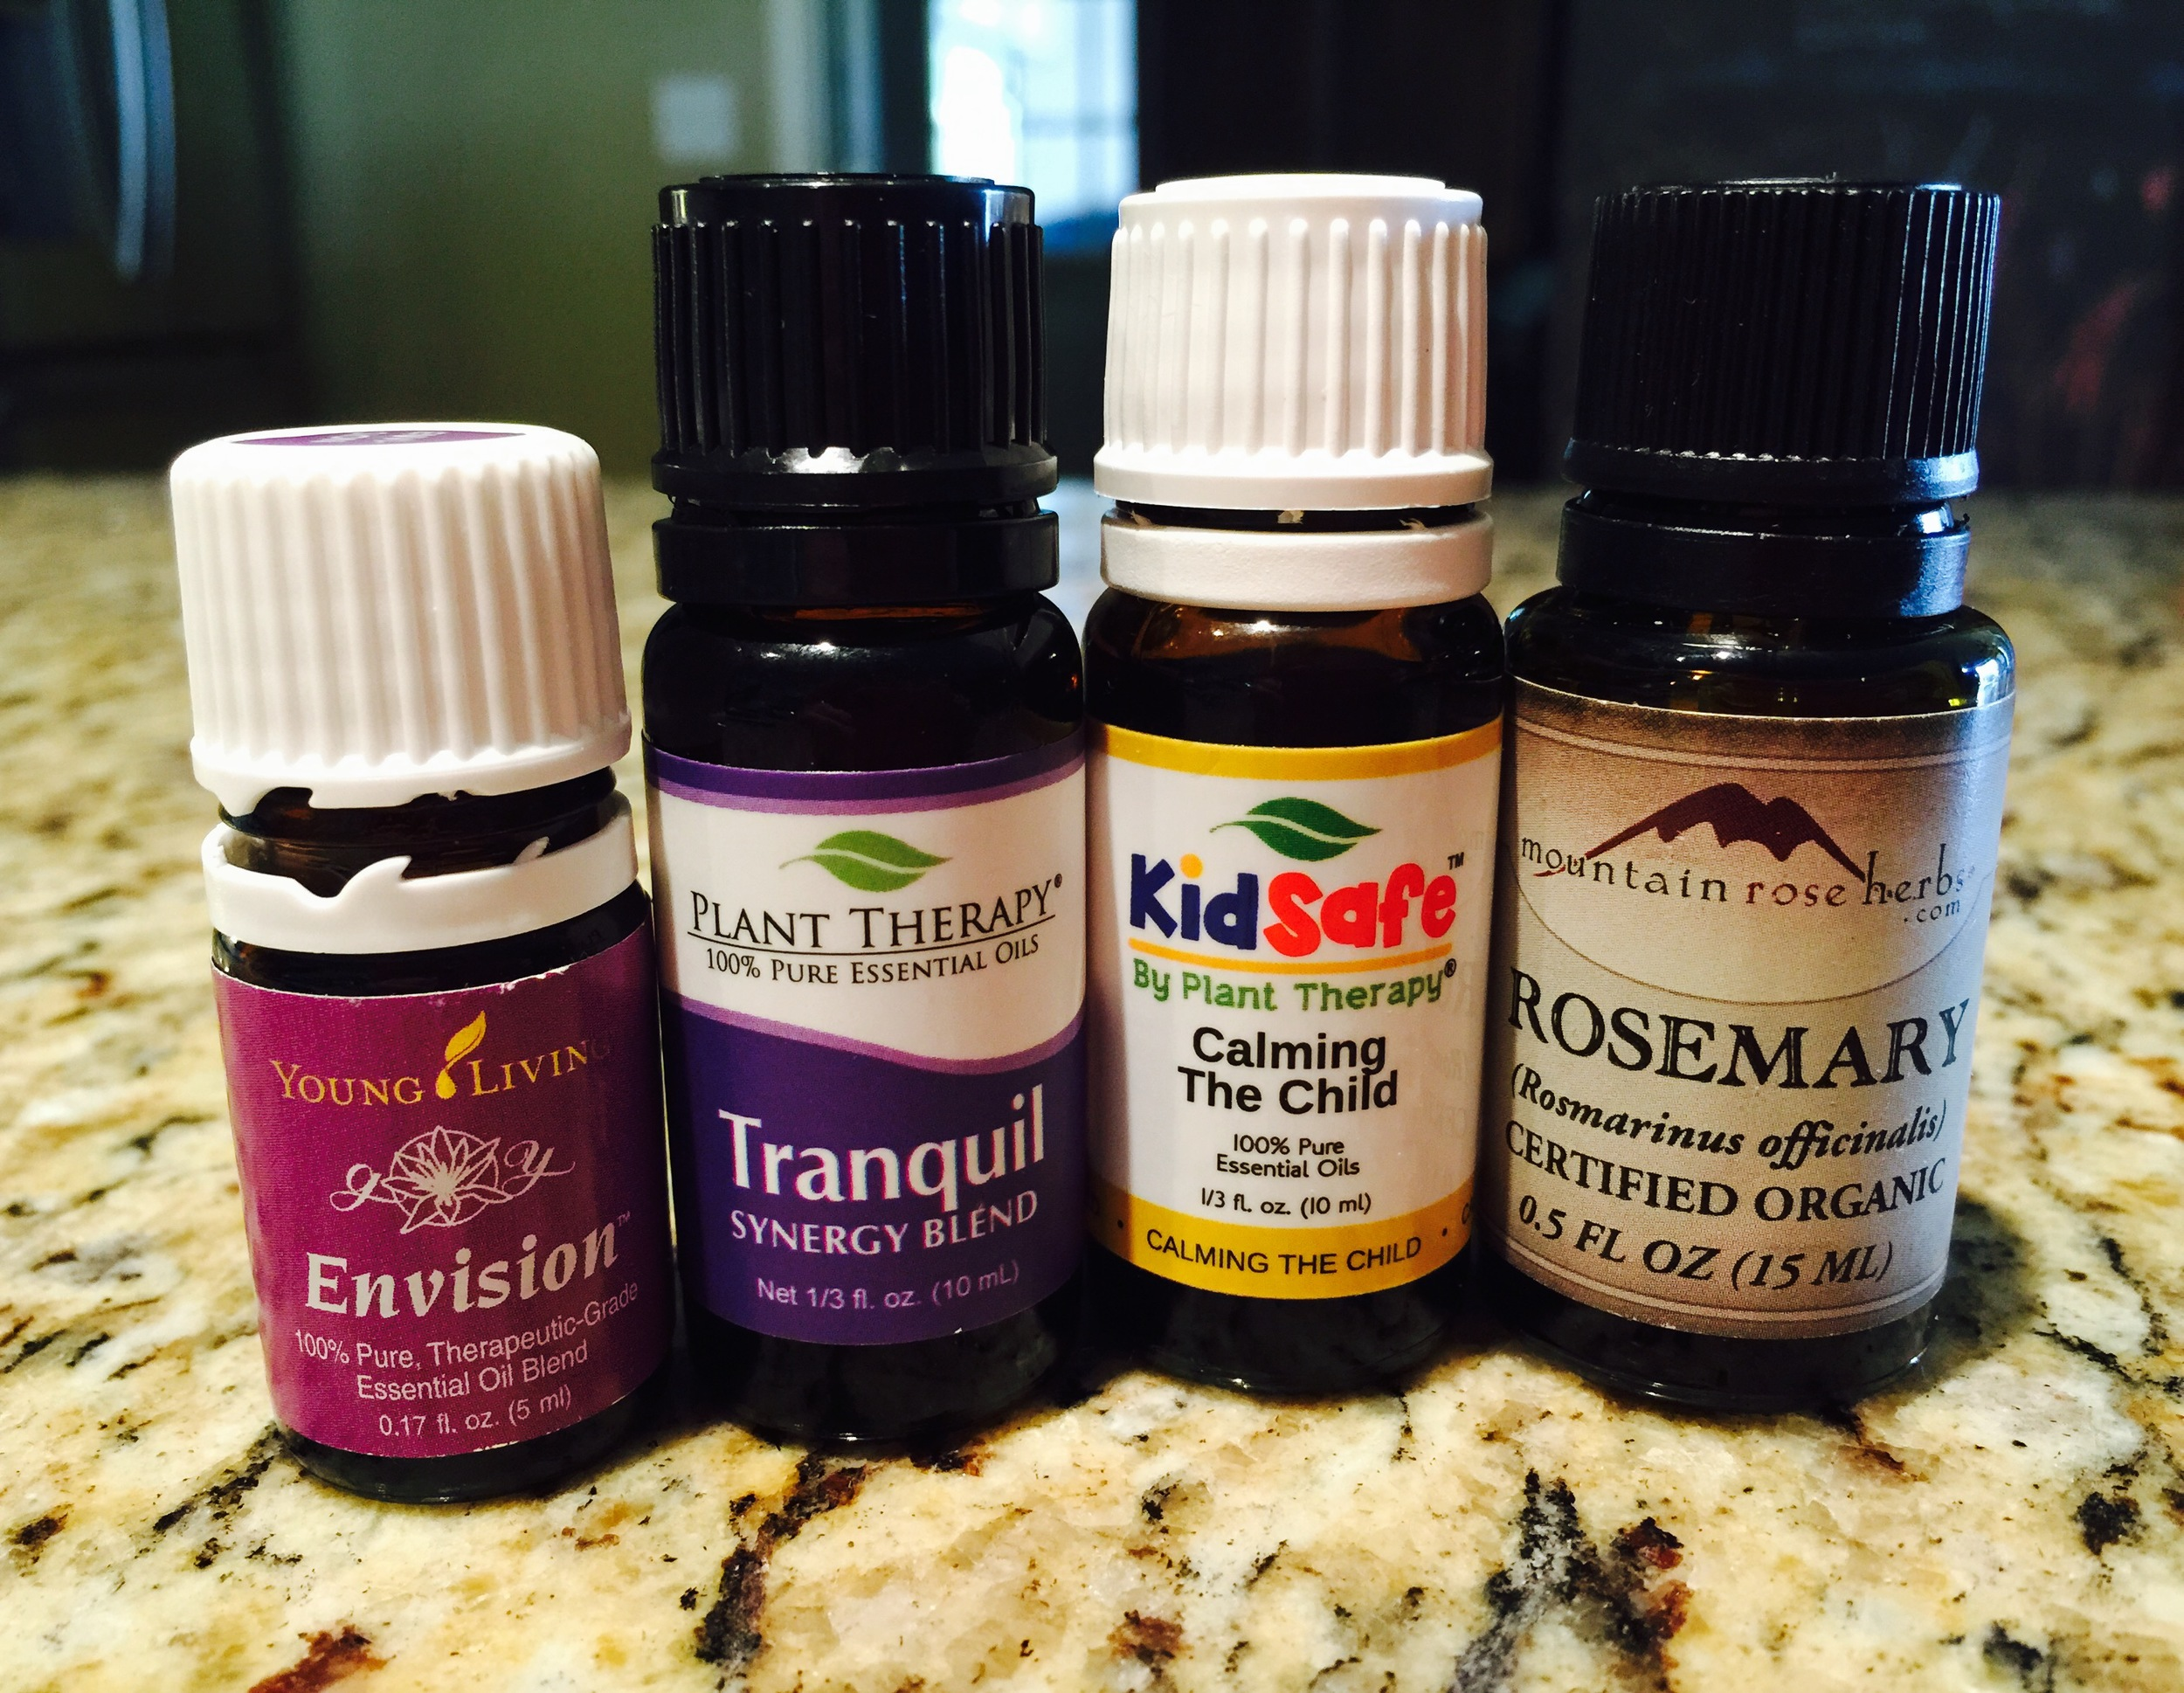 which essential oil brand should i use